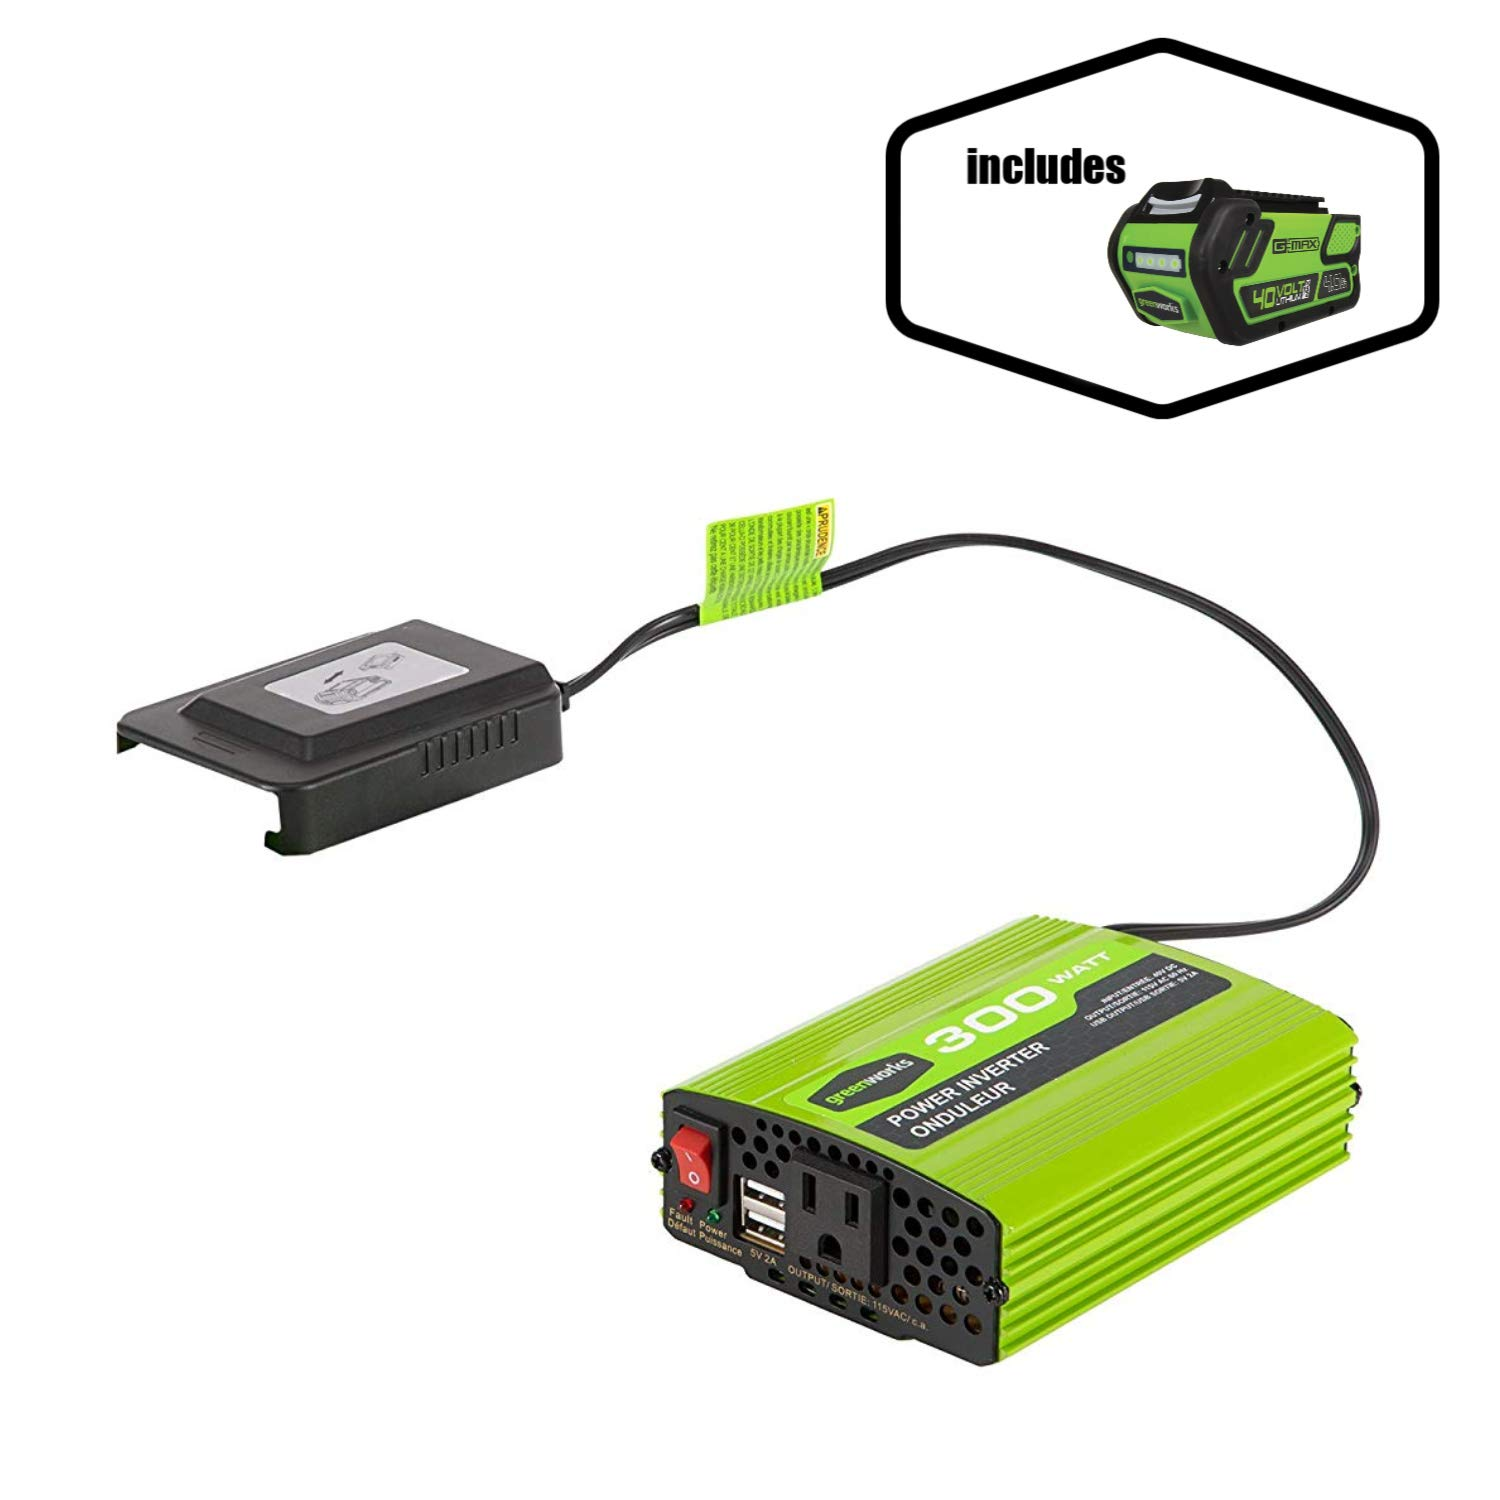 Greenworks 40V 300W Cordless Power Inverter with 4.0Ah 40V battery